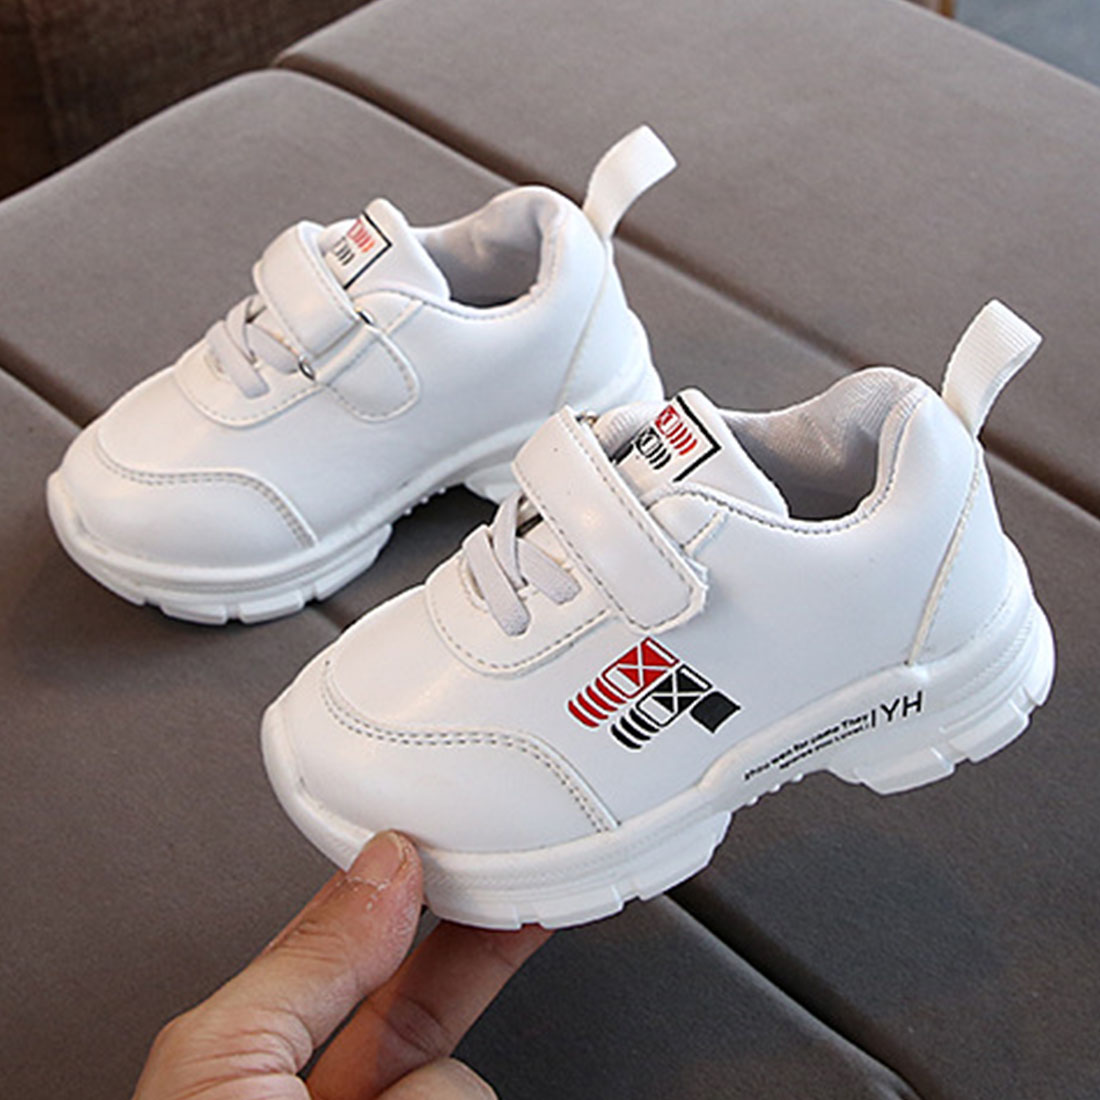 Daclay Shoes Kids Toddler Boy Sneakers Girls Sports Shoes Breathable Fashion Mesh Casual Shoes for School and Picnic